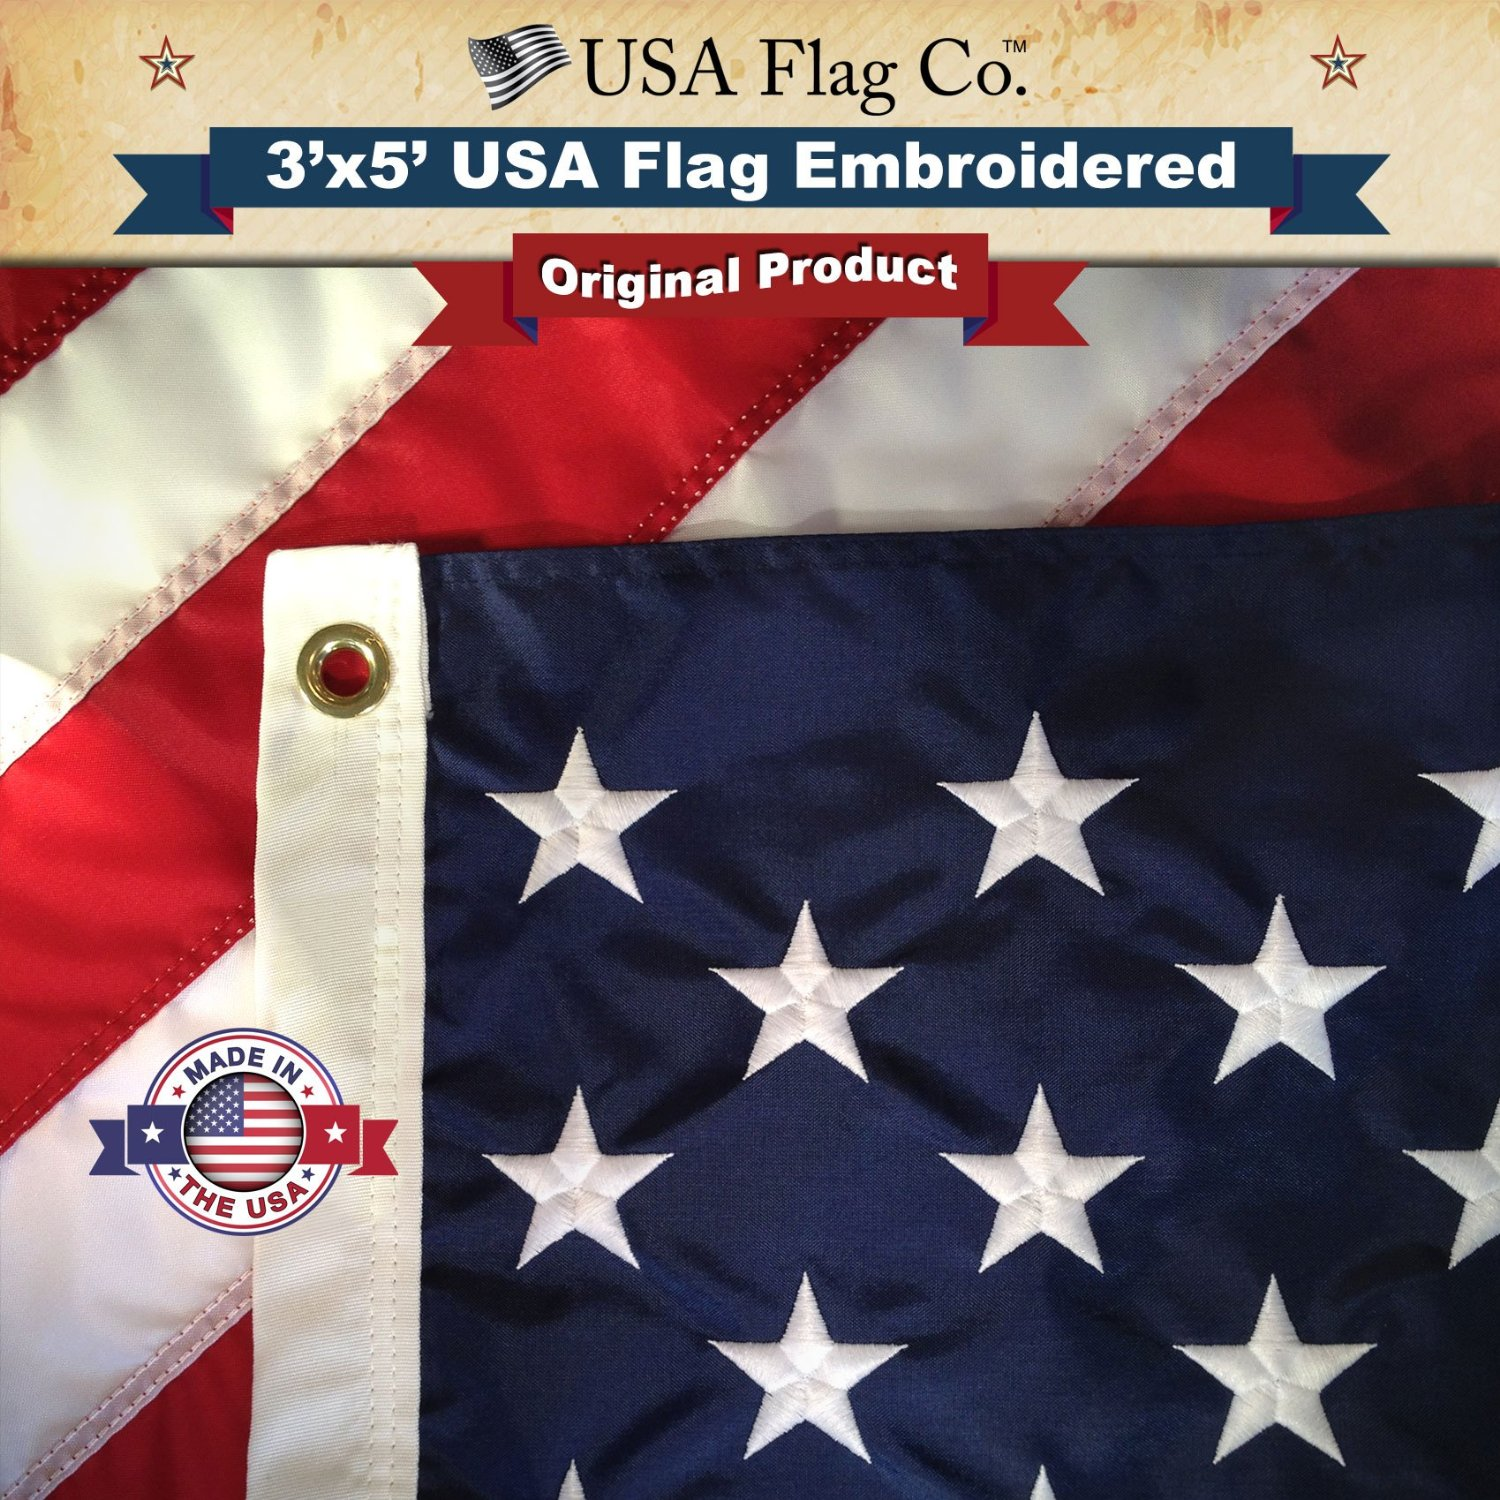 American Flag by USA Flag Co. is 100% American Made: The BEST 3x5 Embroidered Stars and Sewn Stripes, Made in the USA, & comes with Amazon A to Z Guarantee. (3 by 5 foot)